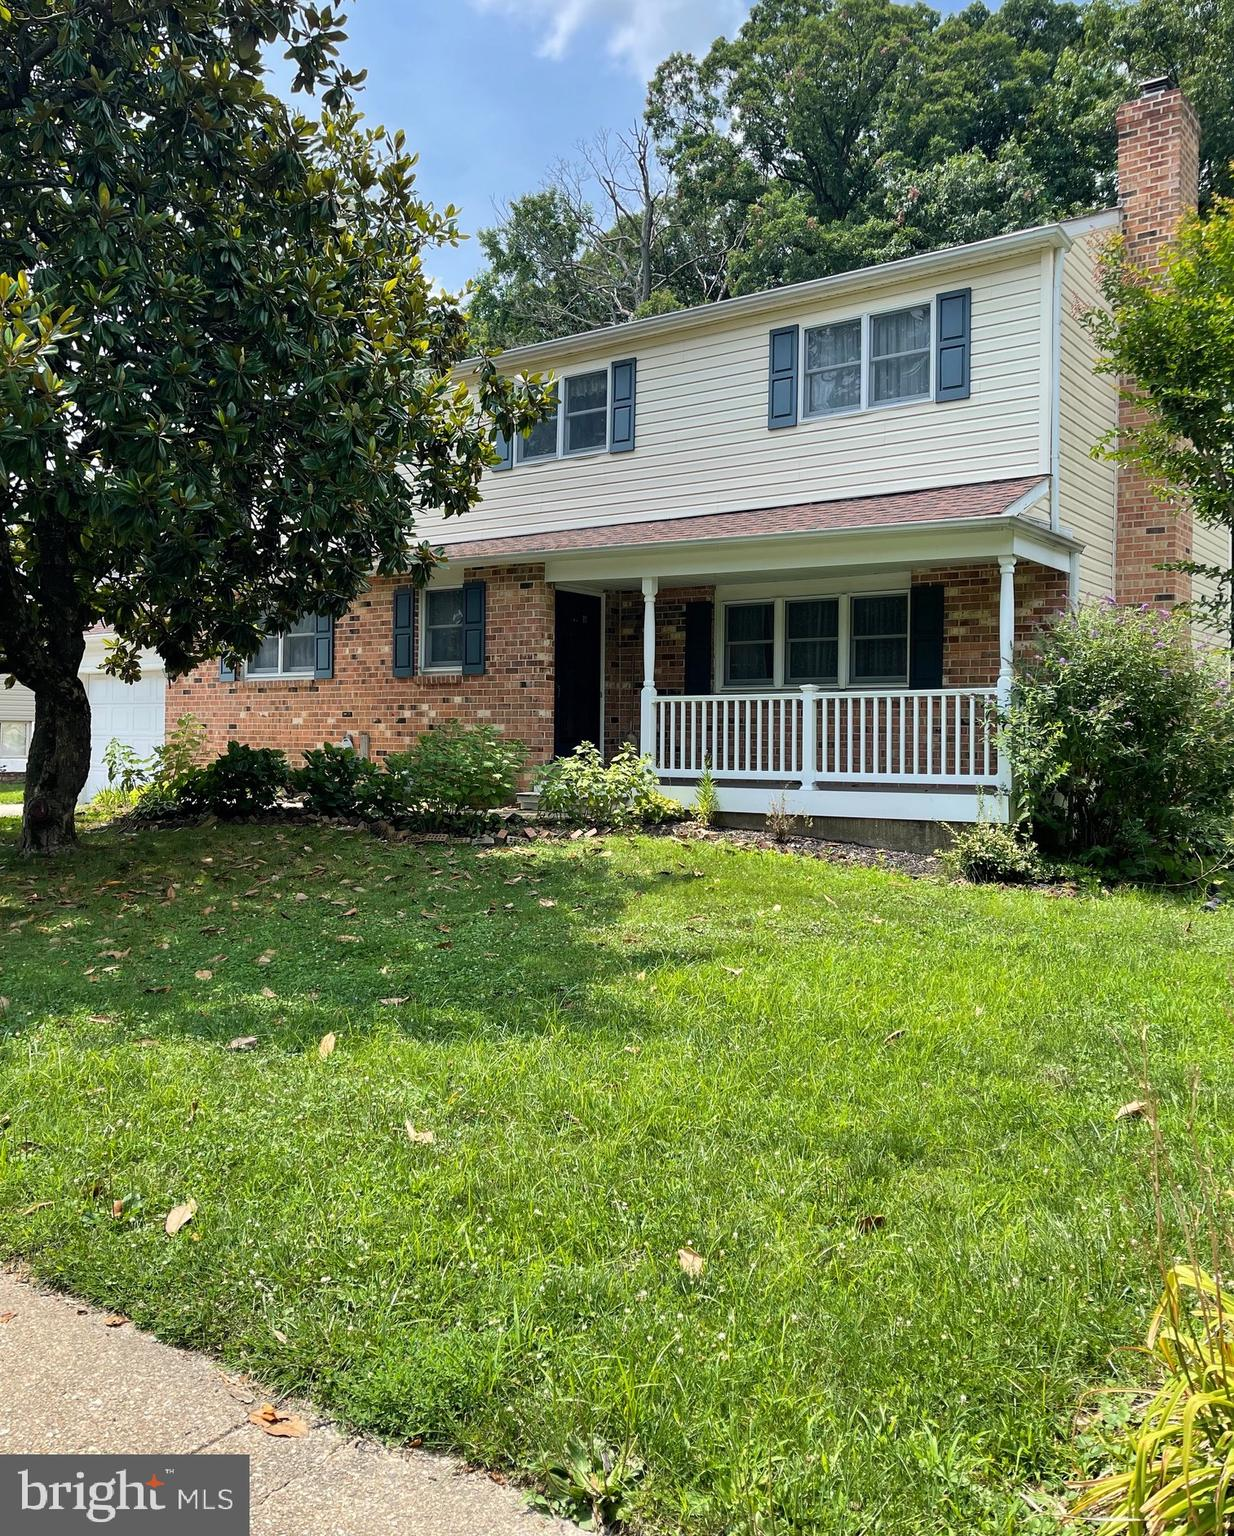 Come check out this home during the 3 day open house/estate sale. This is an estate so no repairs by seller can be done.  House consist of  plenty of space inside and out. Showings are available only Friday-Sunday 10-3 each day. Offers should be in by 8 pm Sunday 18th. Owner will decide Monday 7/19.